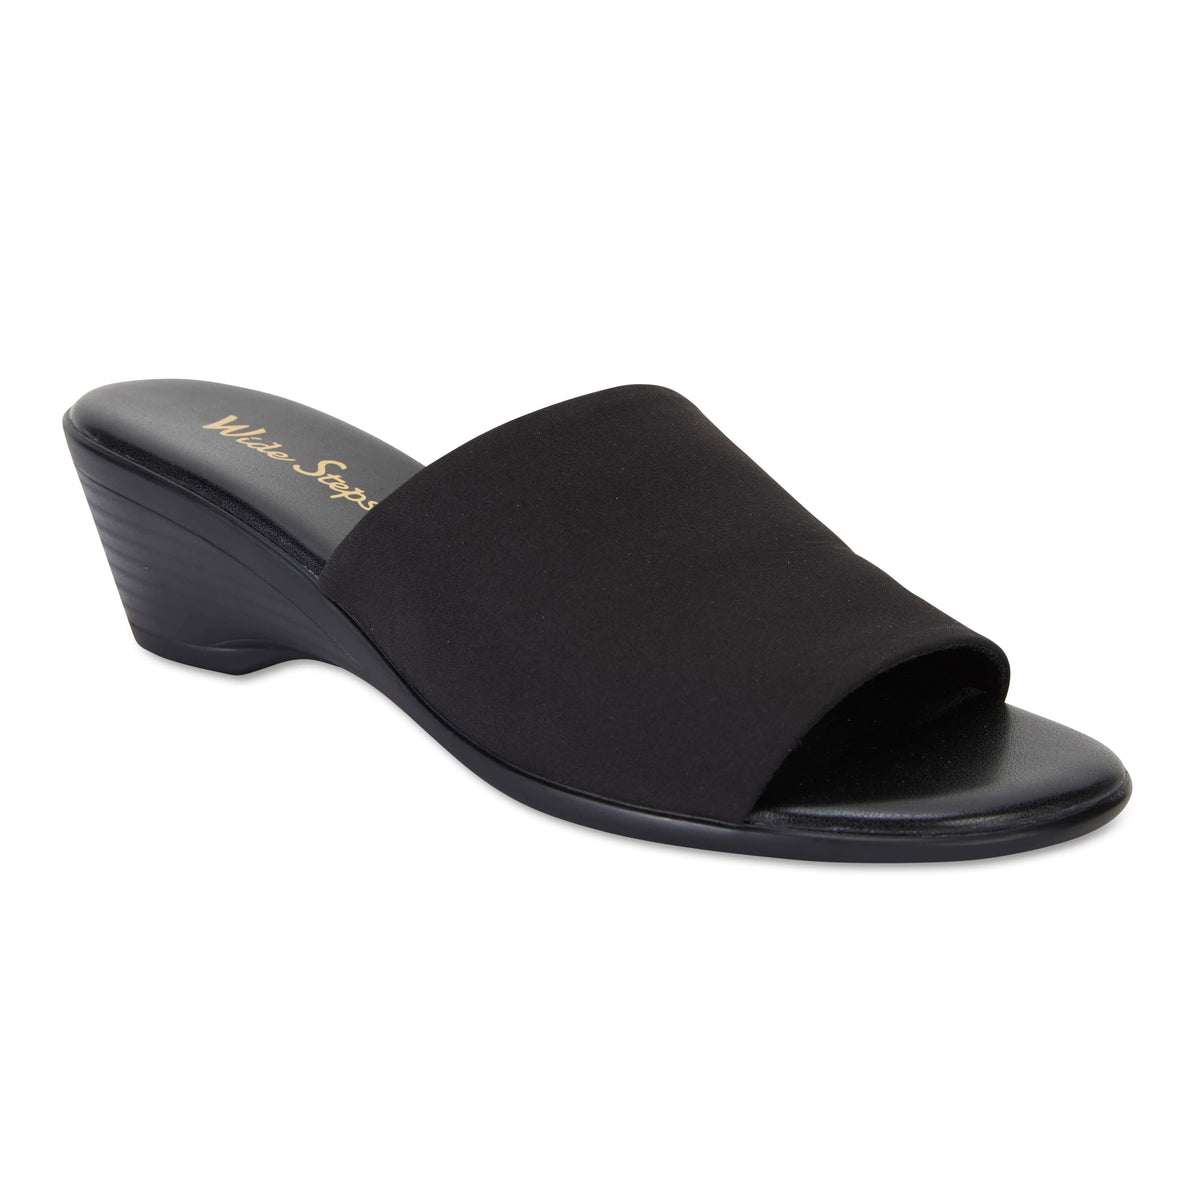 Orient Heel in Black Fabric